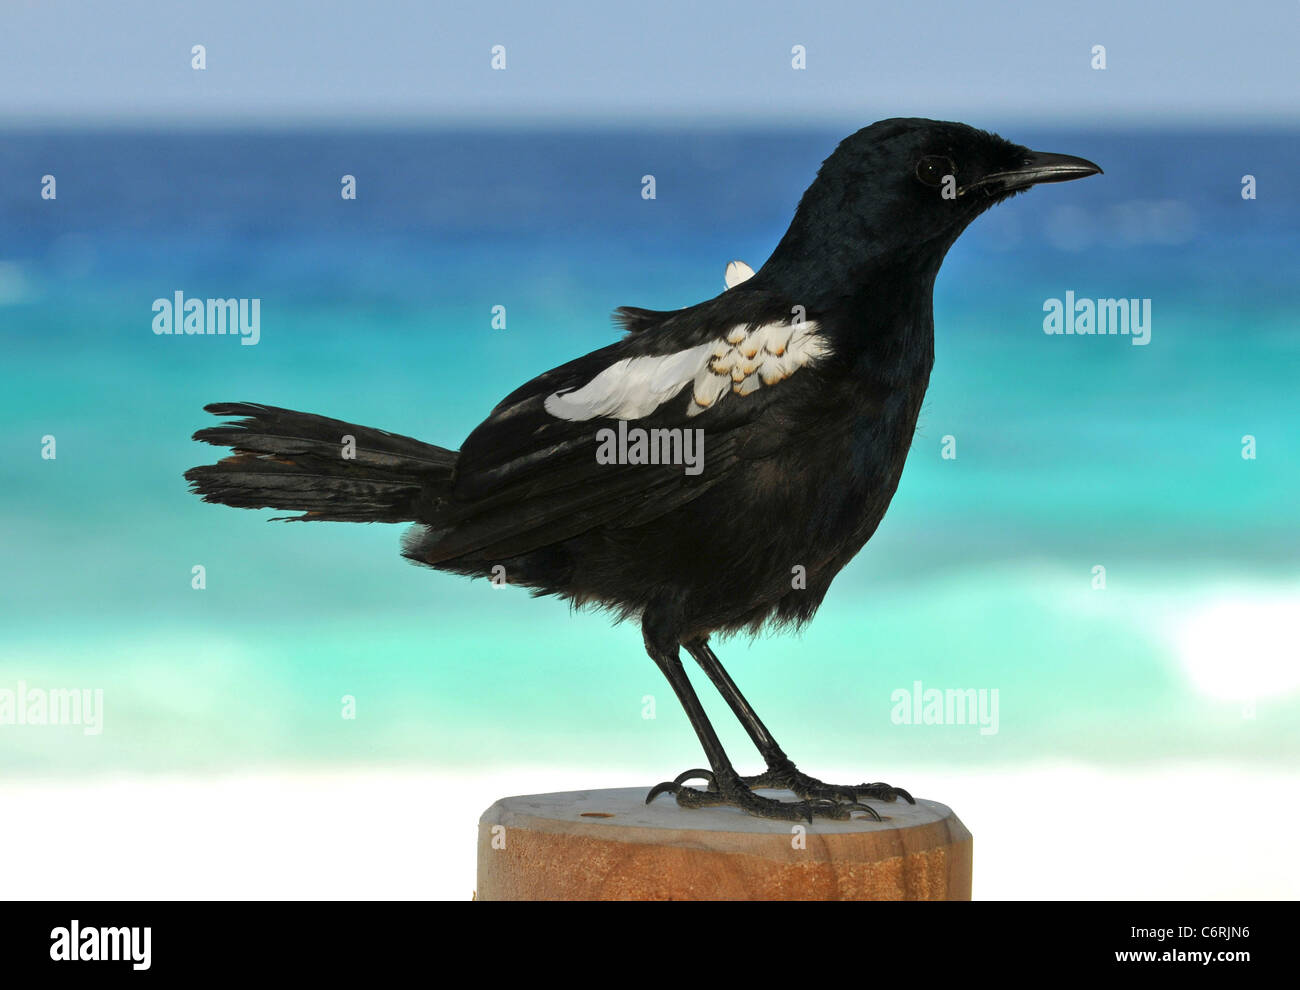 Seychelles Magpie Robin (Copsychus sechellarum) endangered bird from the Seychelles in the Indian Ocean. - Stock Image